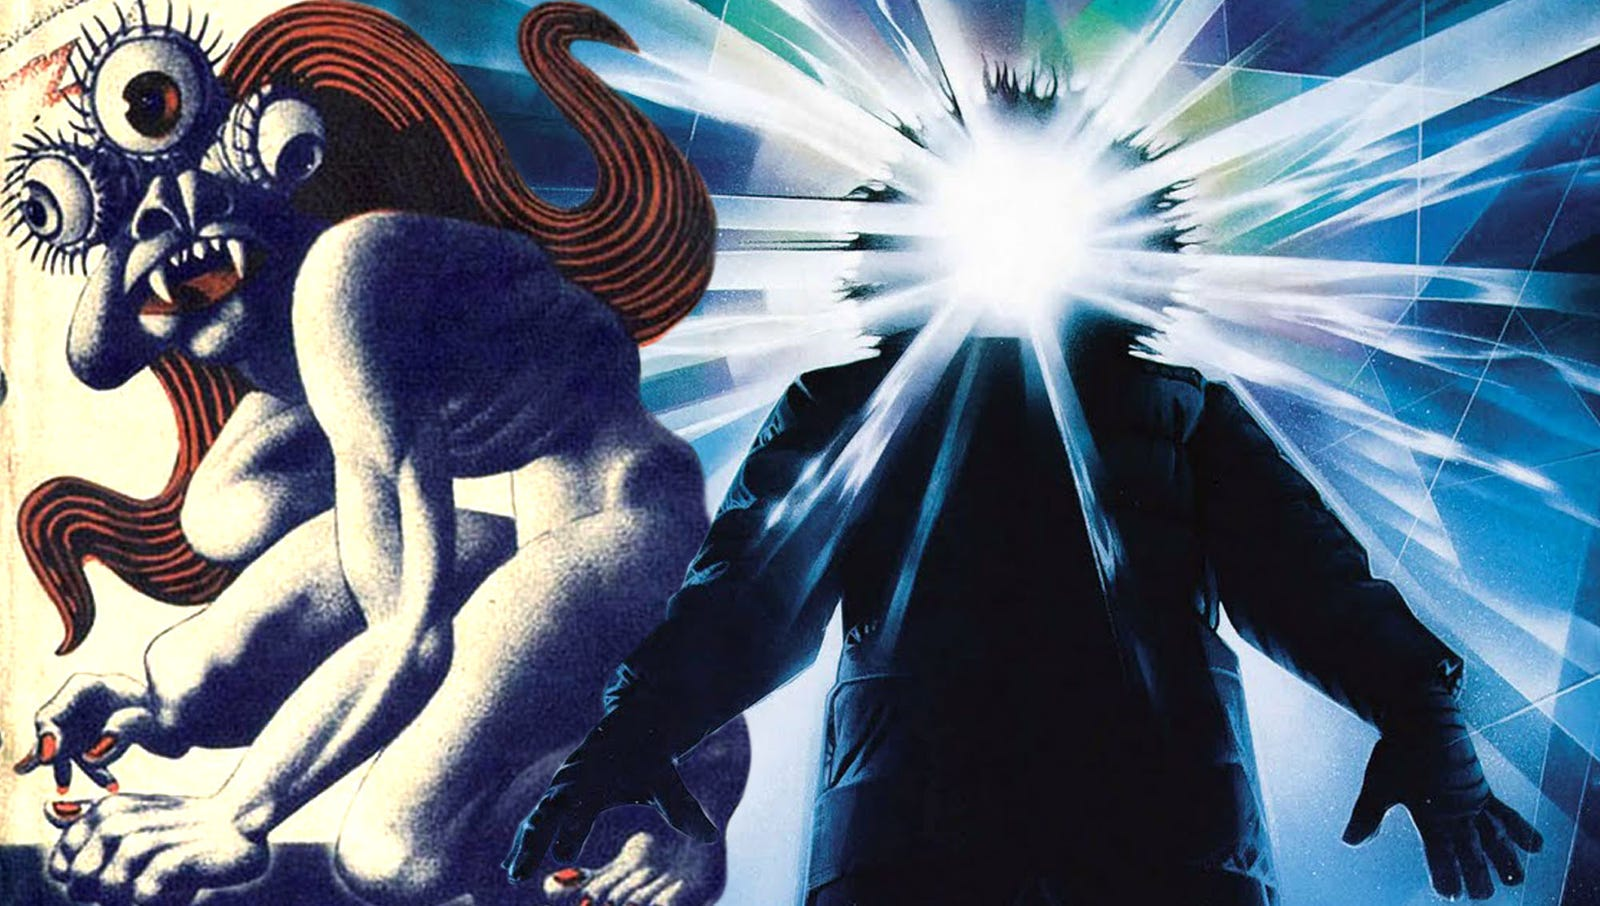 The Thing shows how non-metaphoric monster movies come down